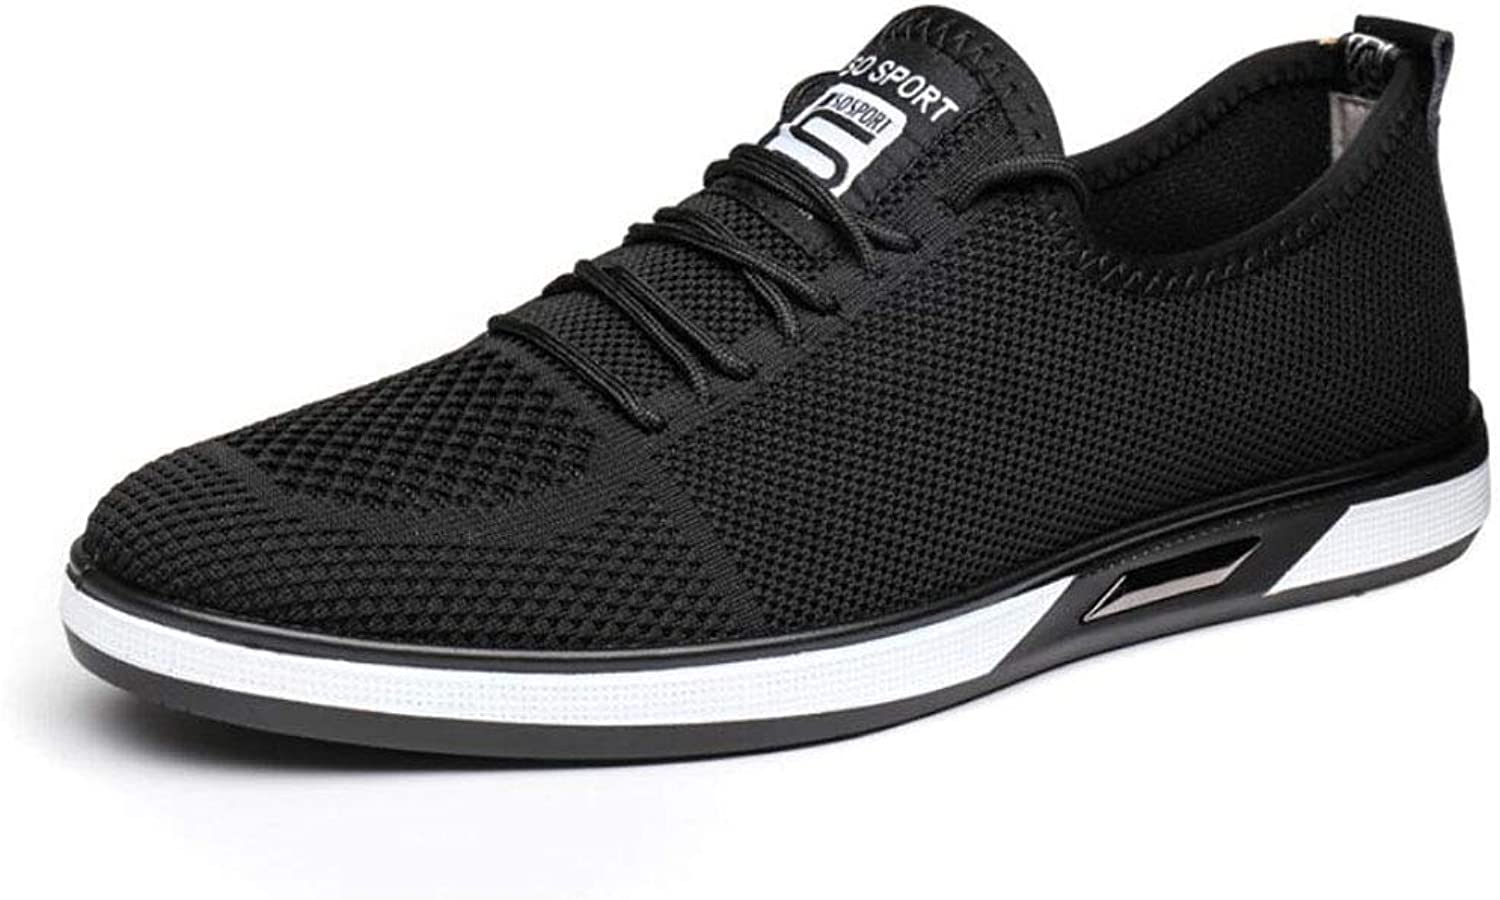 Mens Running shoes, Breathable Cross Training shoes Slip On Sneakers Lightweight Athletic Walking Footwear for Men